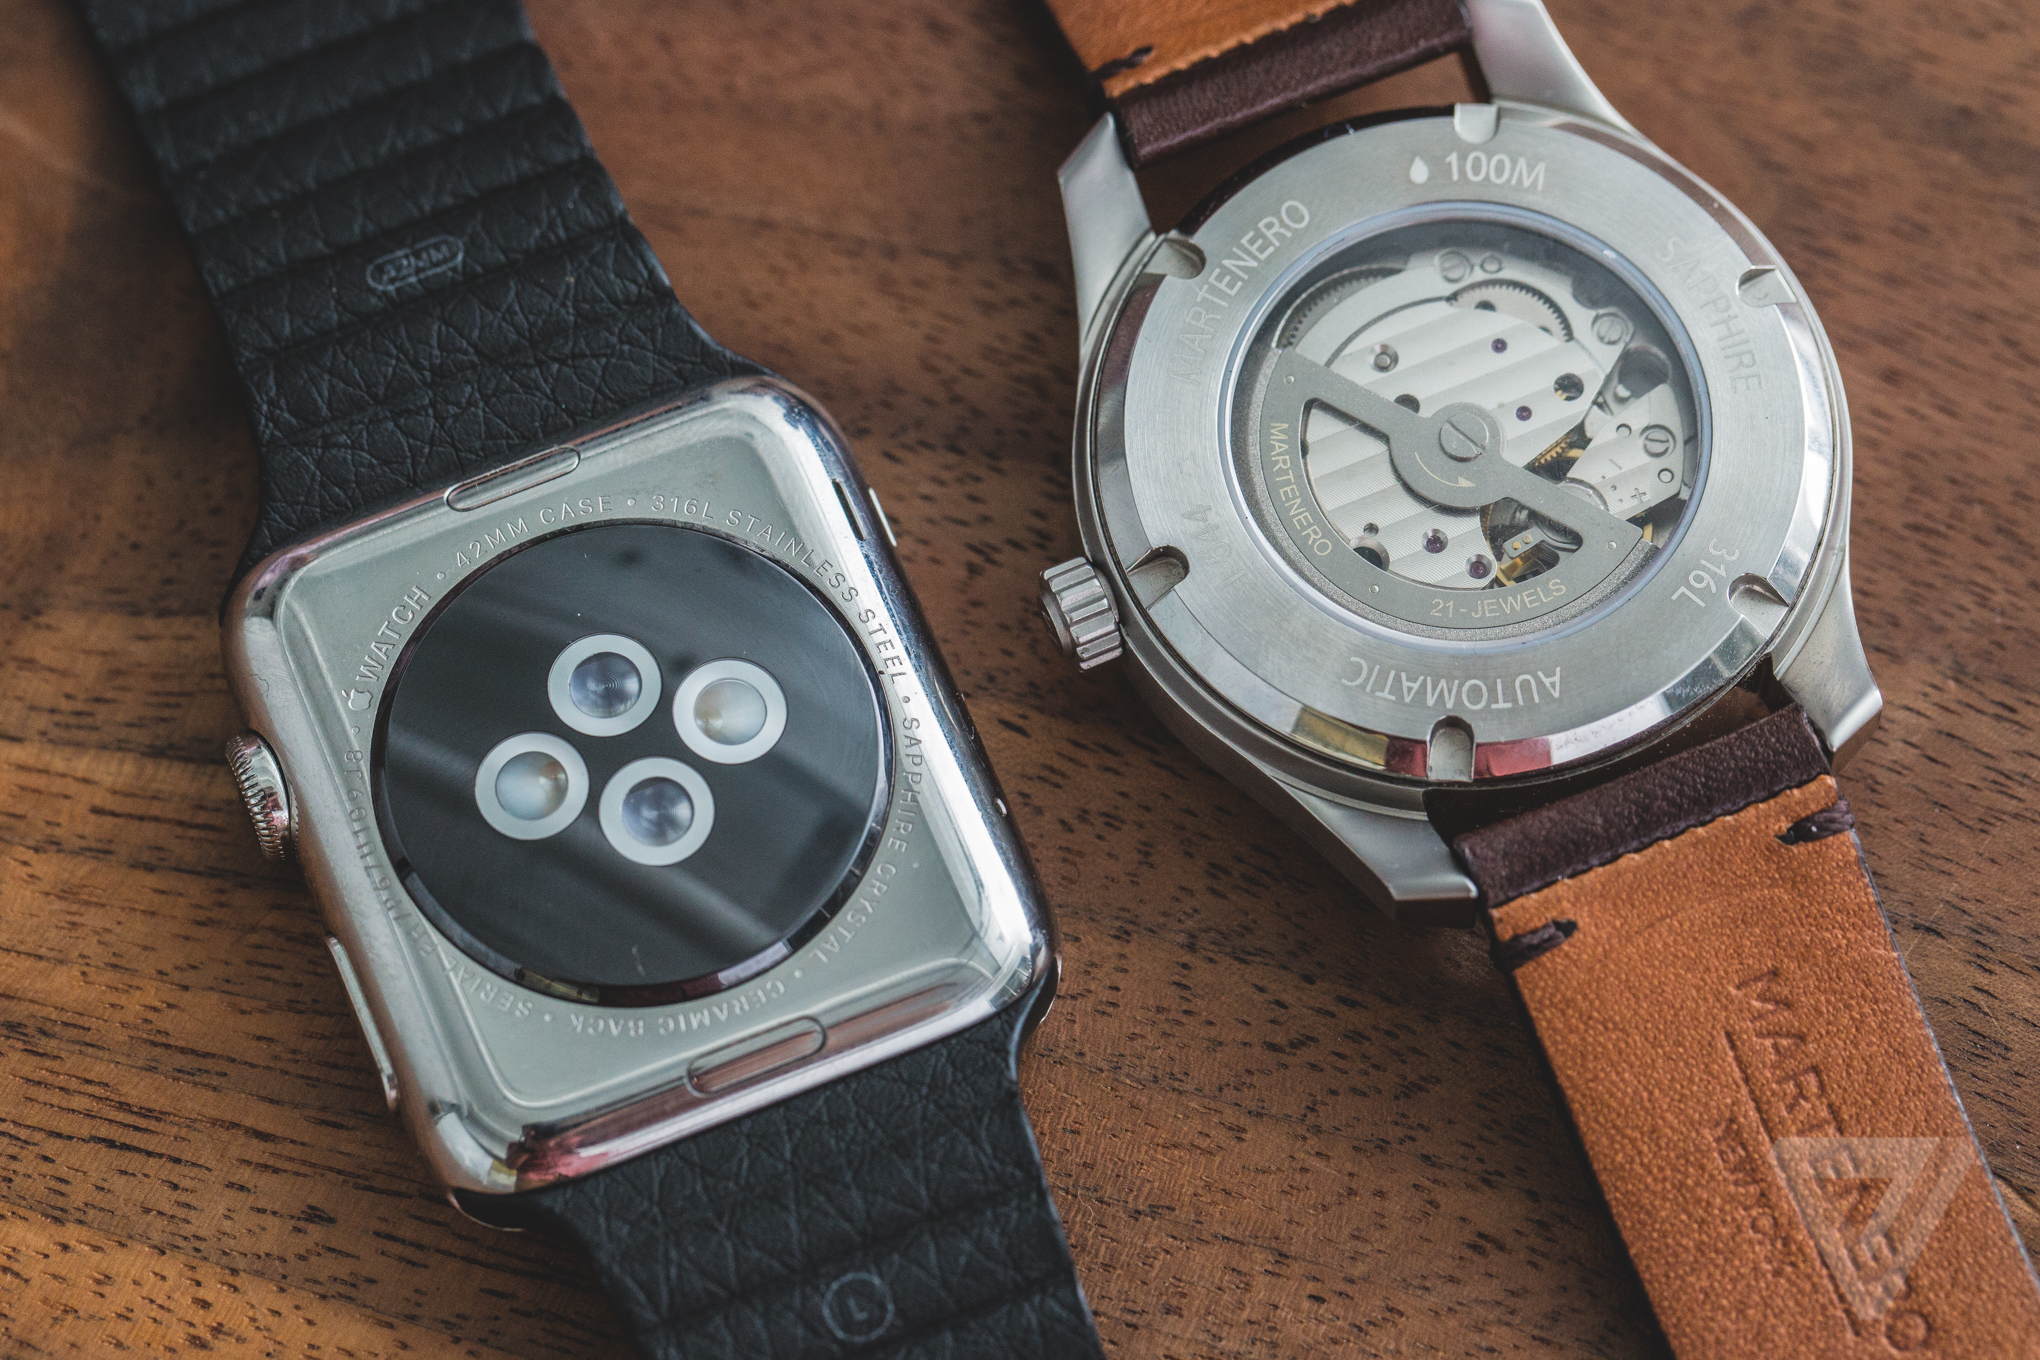 cues under four carry best the design affordable everyday of minimalist watches